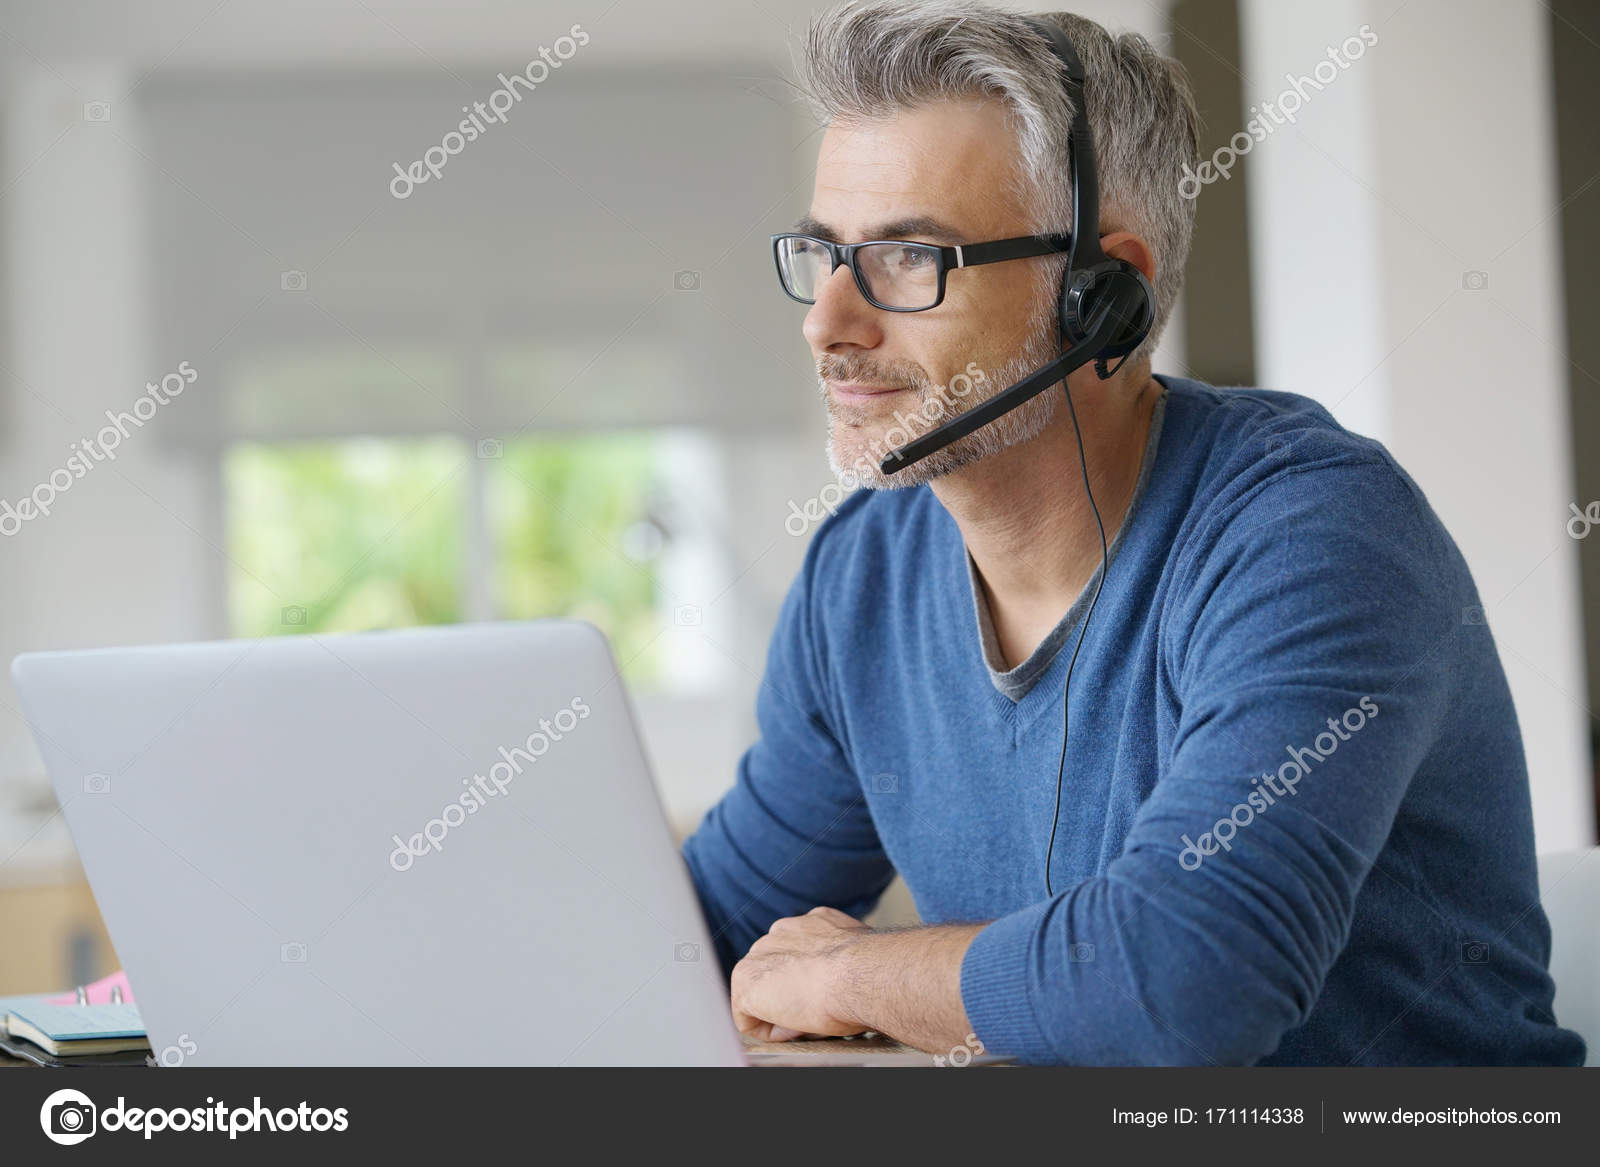 Home Office Telearbeit Sales Representative Teleworking Stock Photo Goodluz 171114338